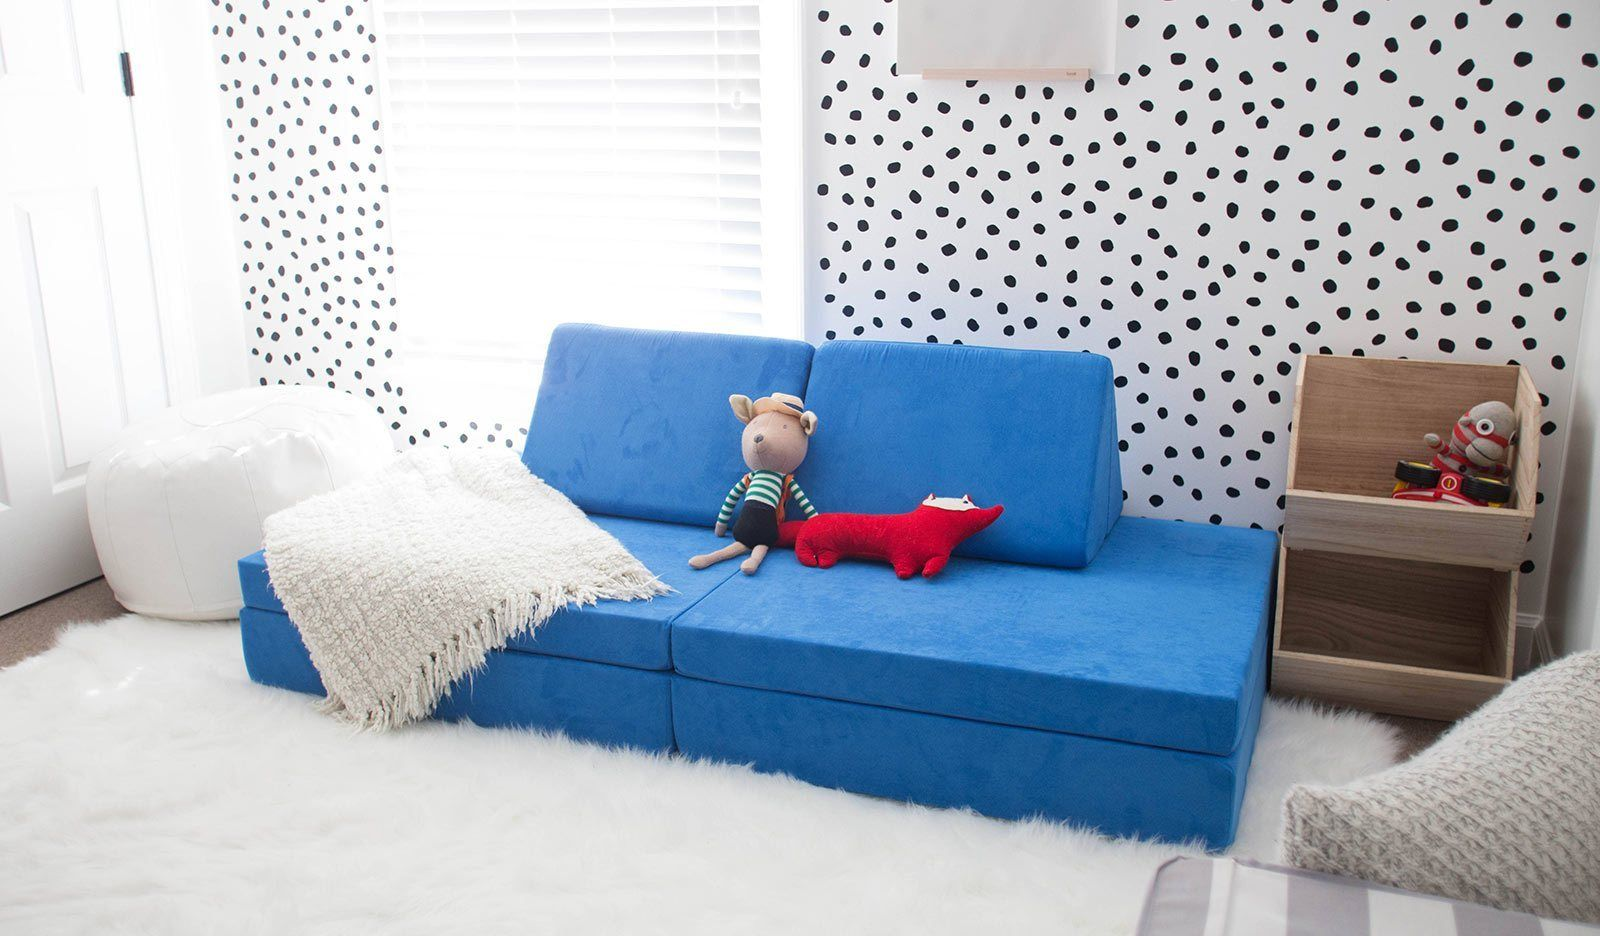 The Kid Room Decor Playroom Furniture Kids Couch